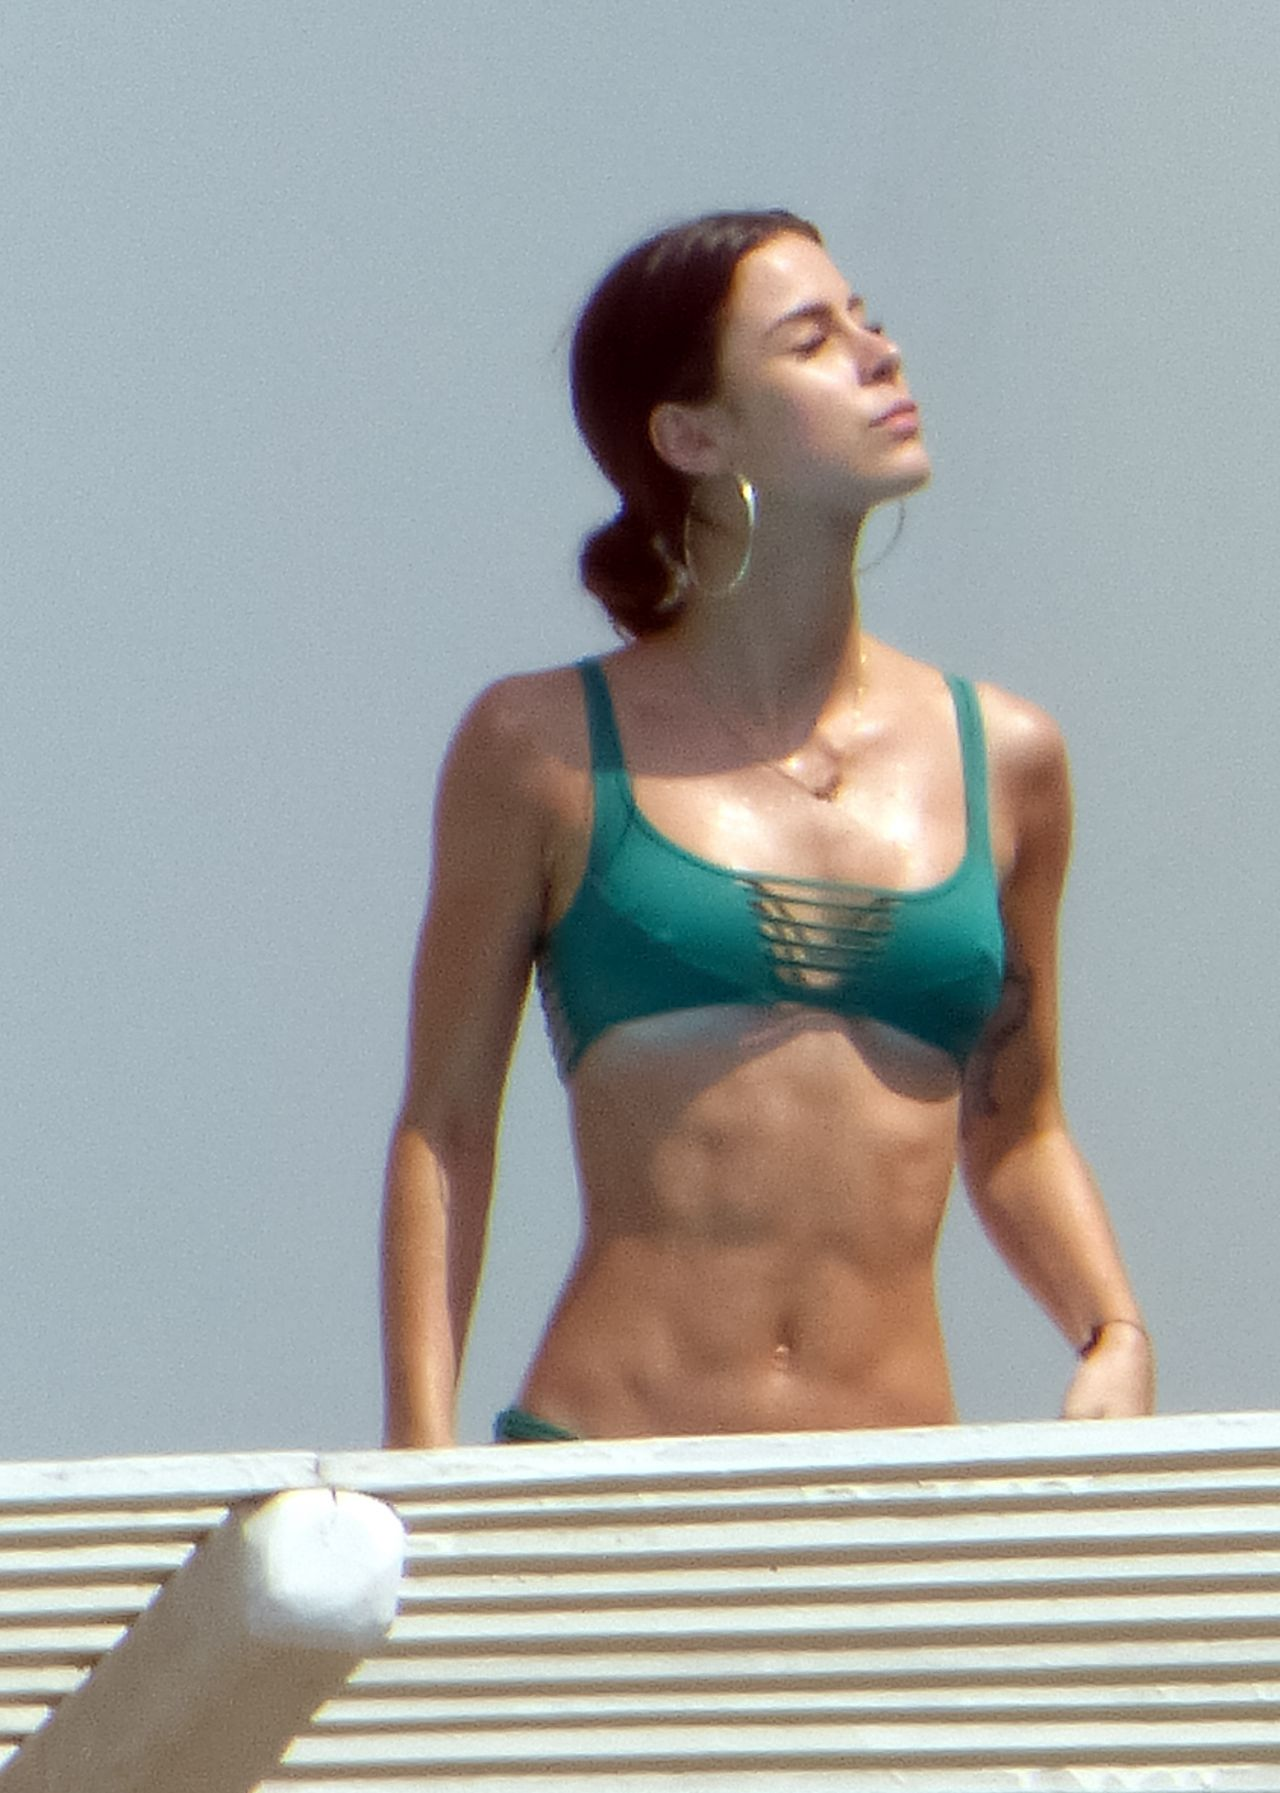 Gallery Swimsuit Lena Meyer-Landrut  nudes (11 photos), 2019, cameltoe